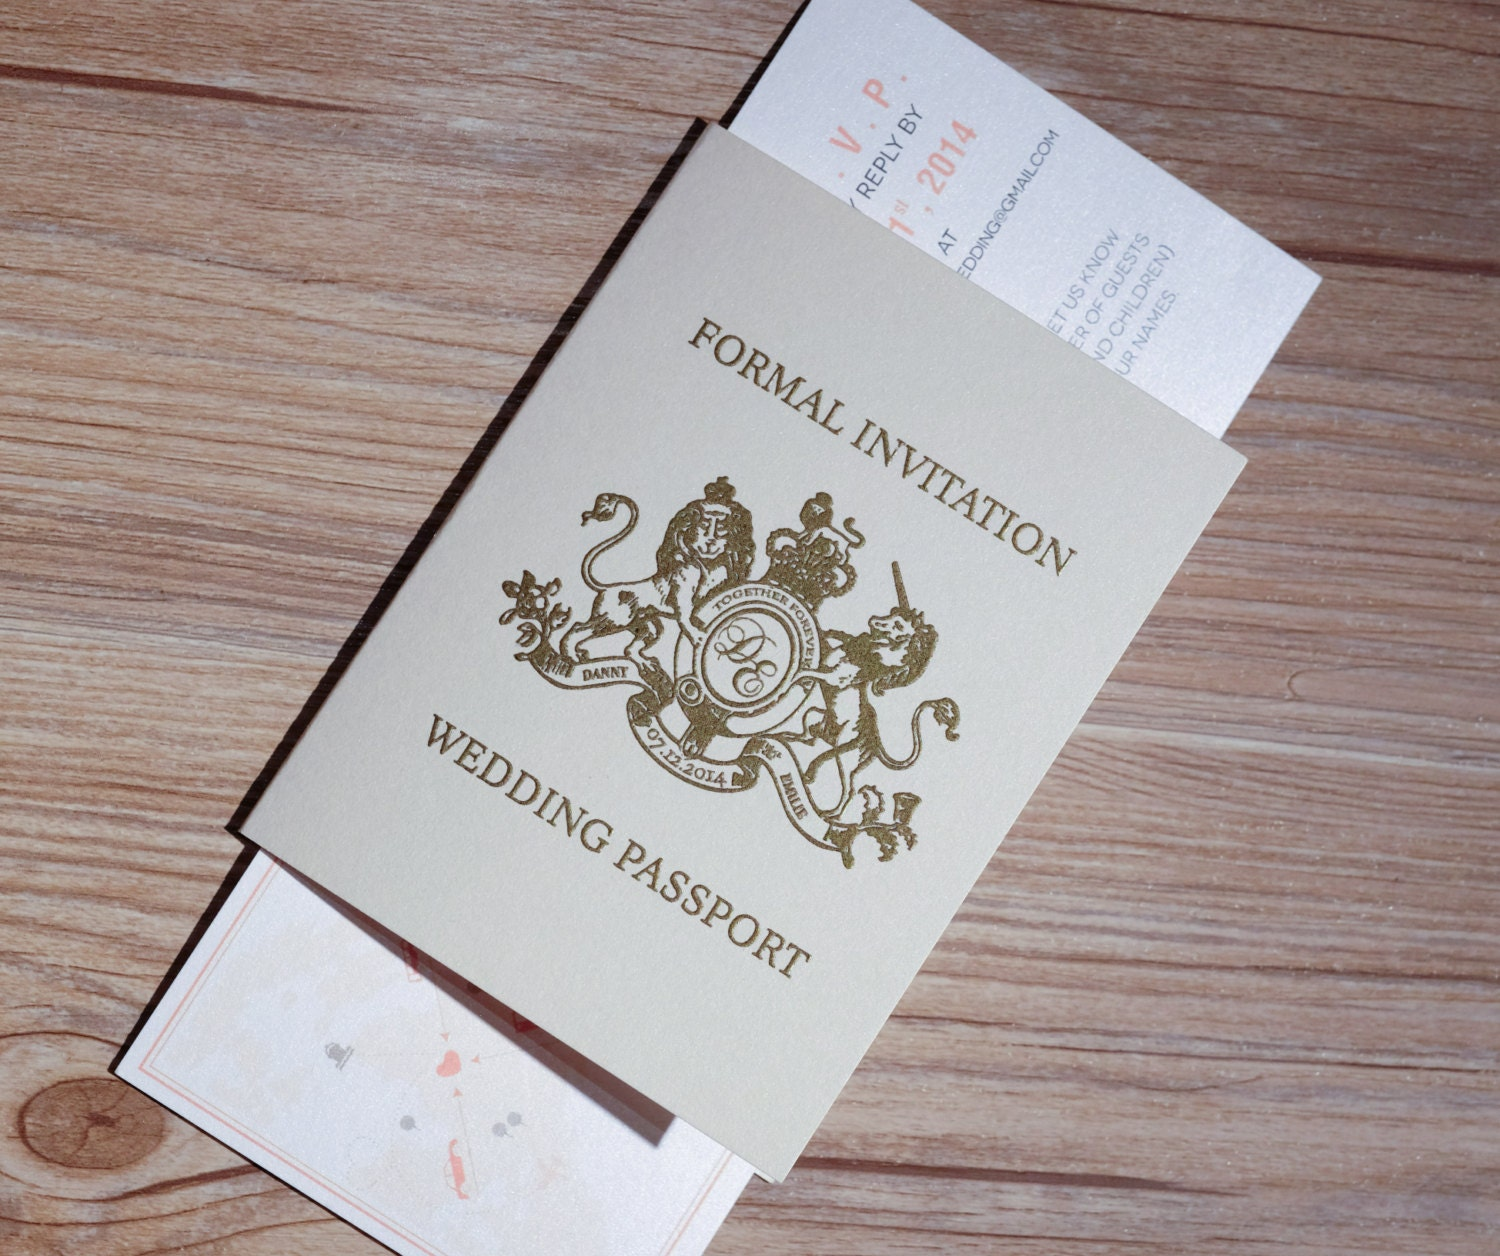 passport wedding invitations - Goal.blockety.co